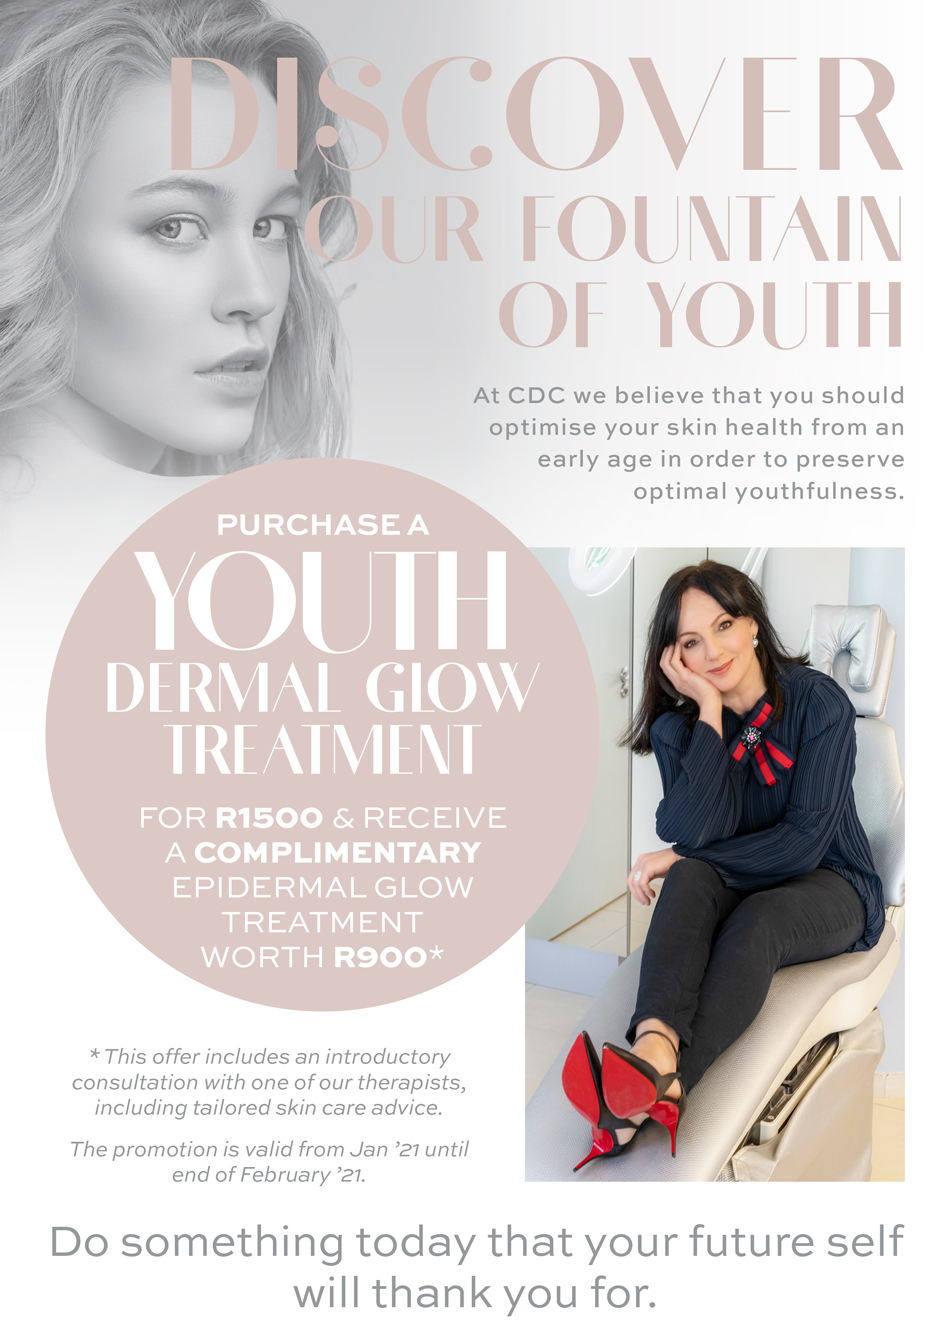 Purchase a youth dermal glow treatment for R1500 & receive a complimentary Epidermal glow treatment worth R900